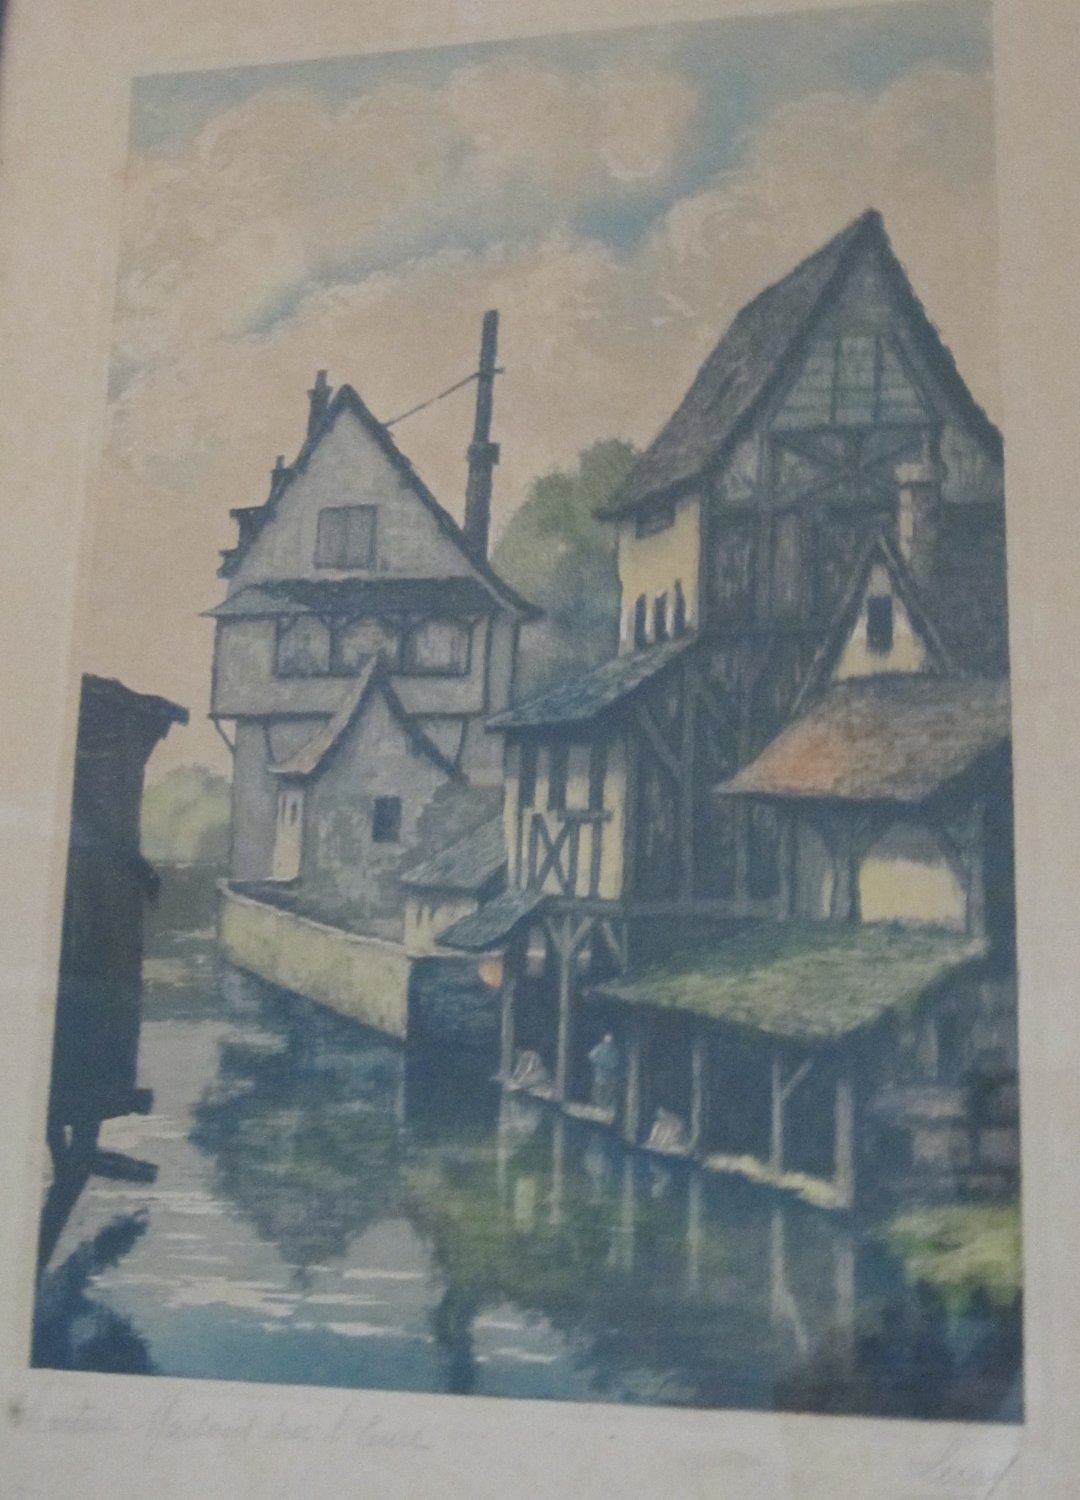 Vintage Signed Leray Hand Tinted Etching Painting Chartres Maisons sur l'Eure River in Wood Frame